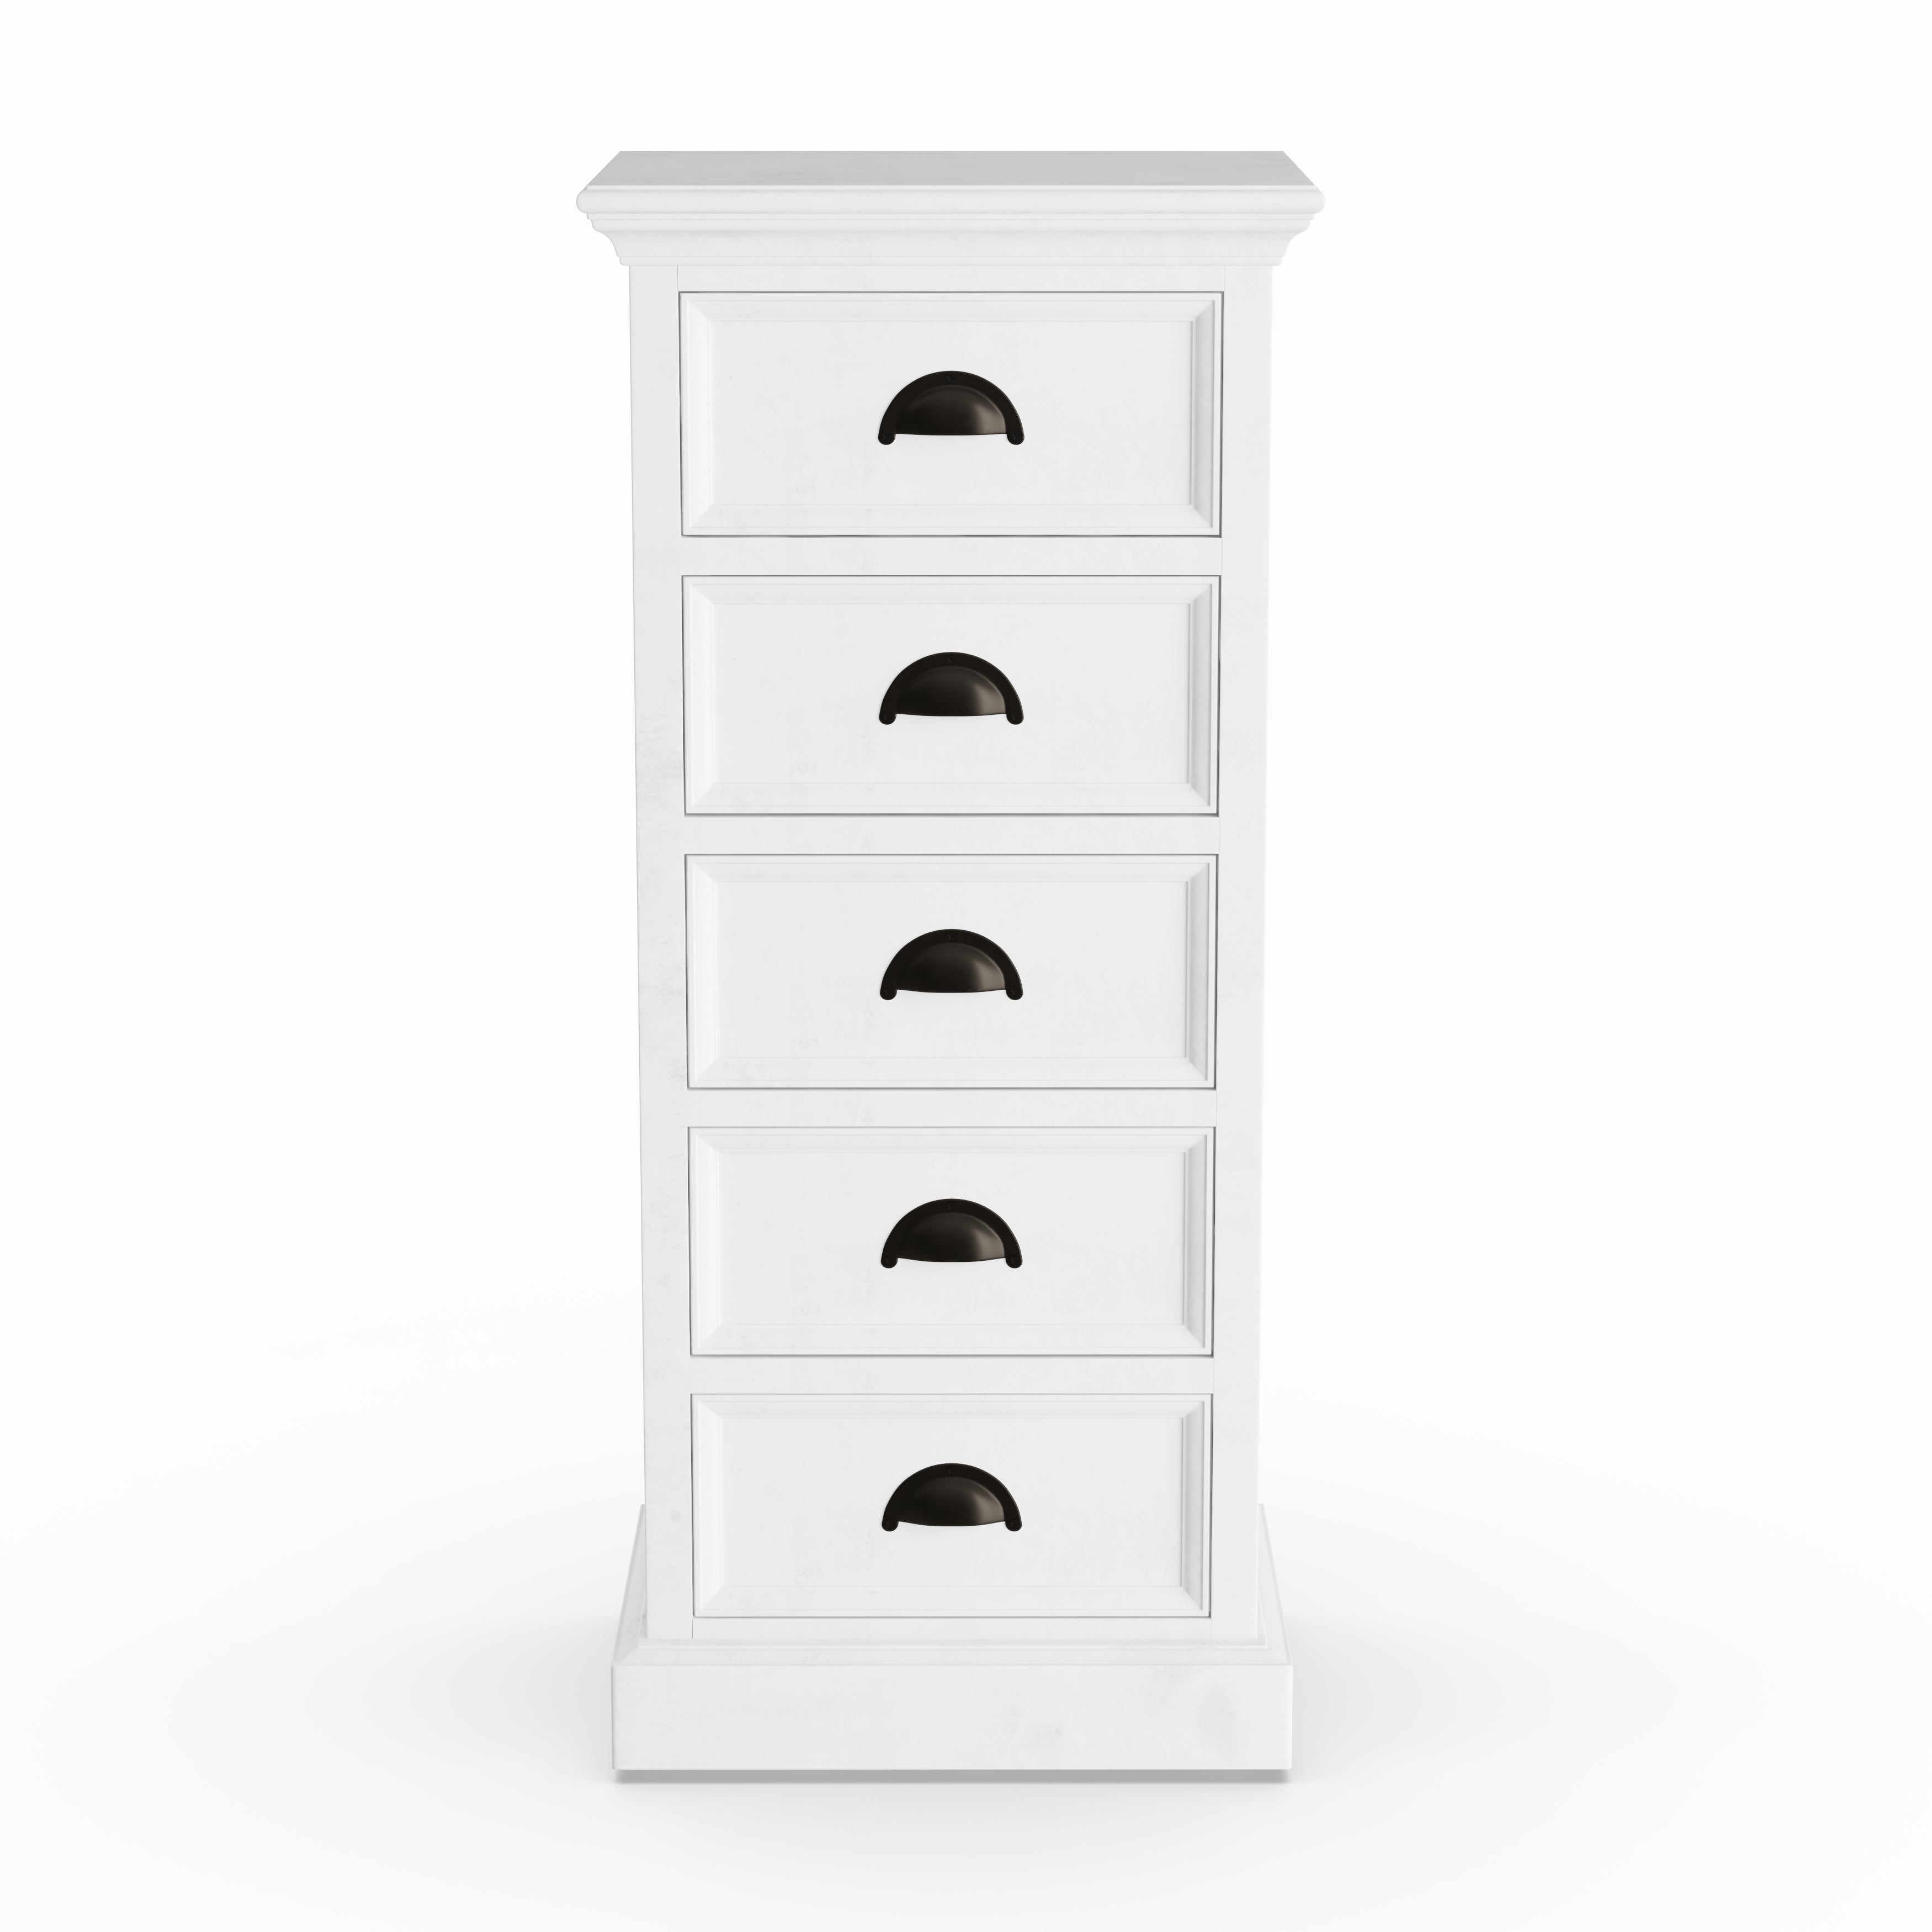 Shop The Gray Barn Mansfield Park White Mahogany 5 Drawer Storage Unit    Free Shipping Today   Overstock   21895205